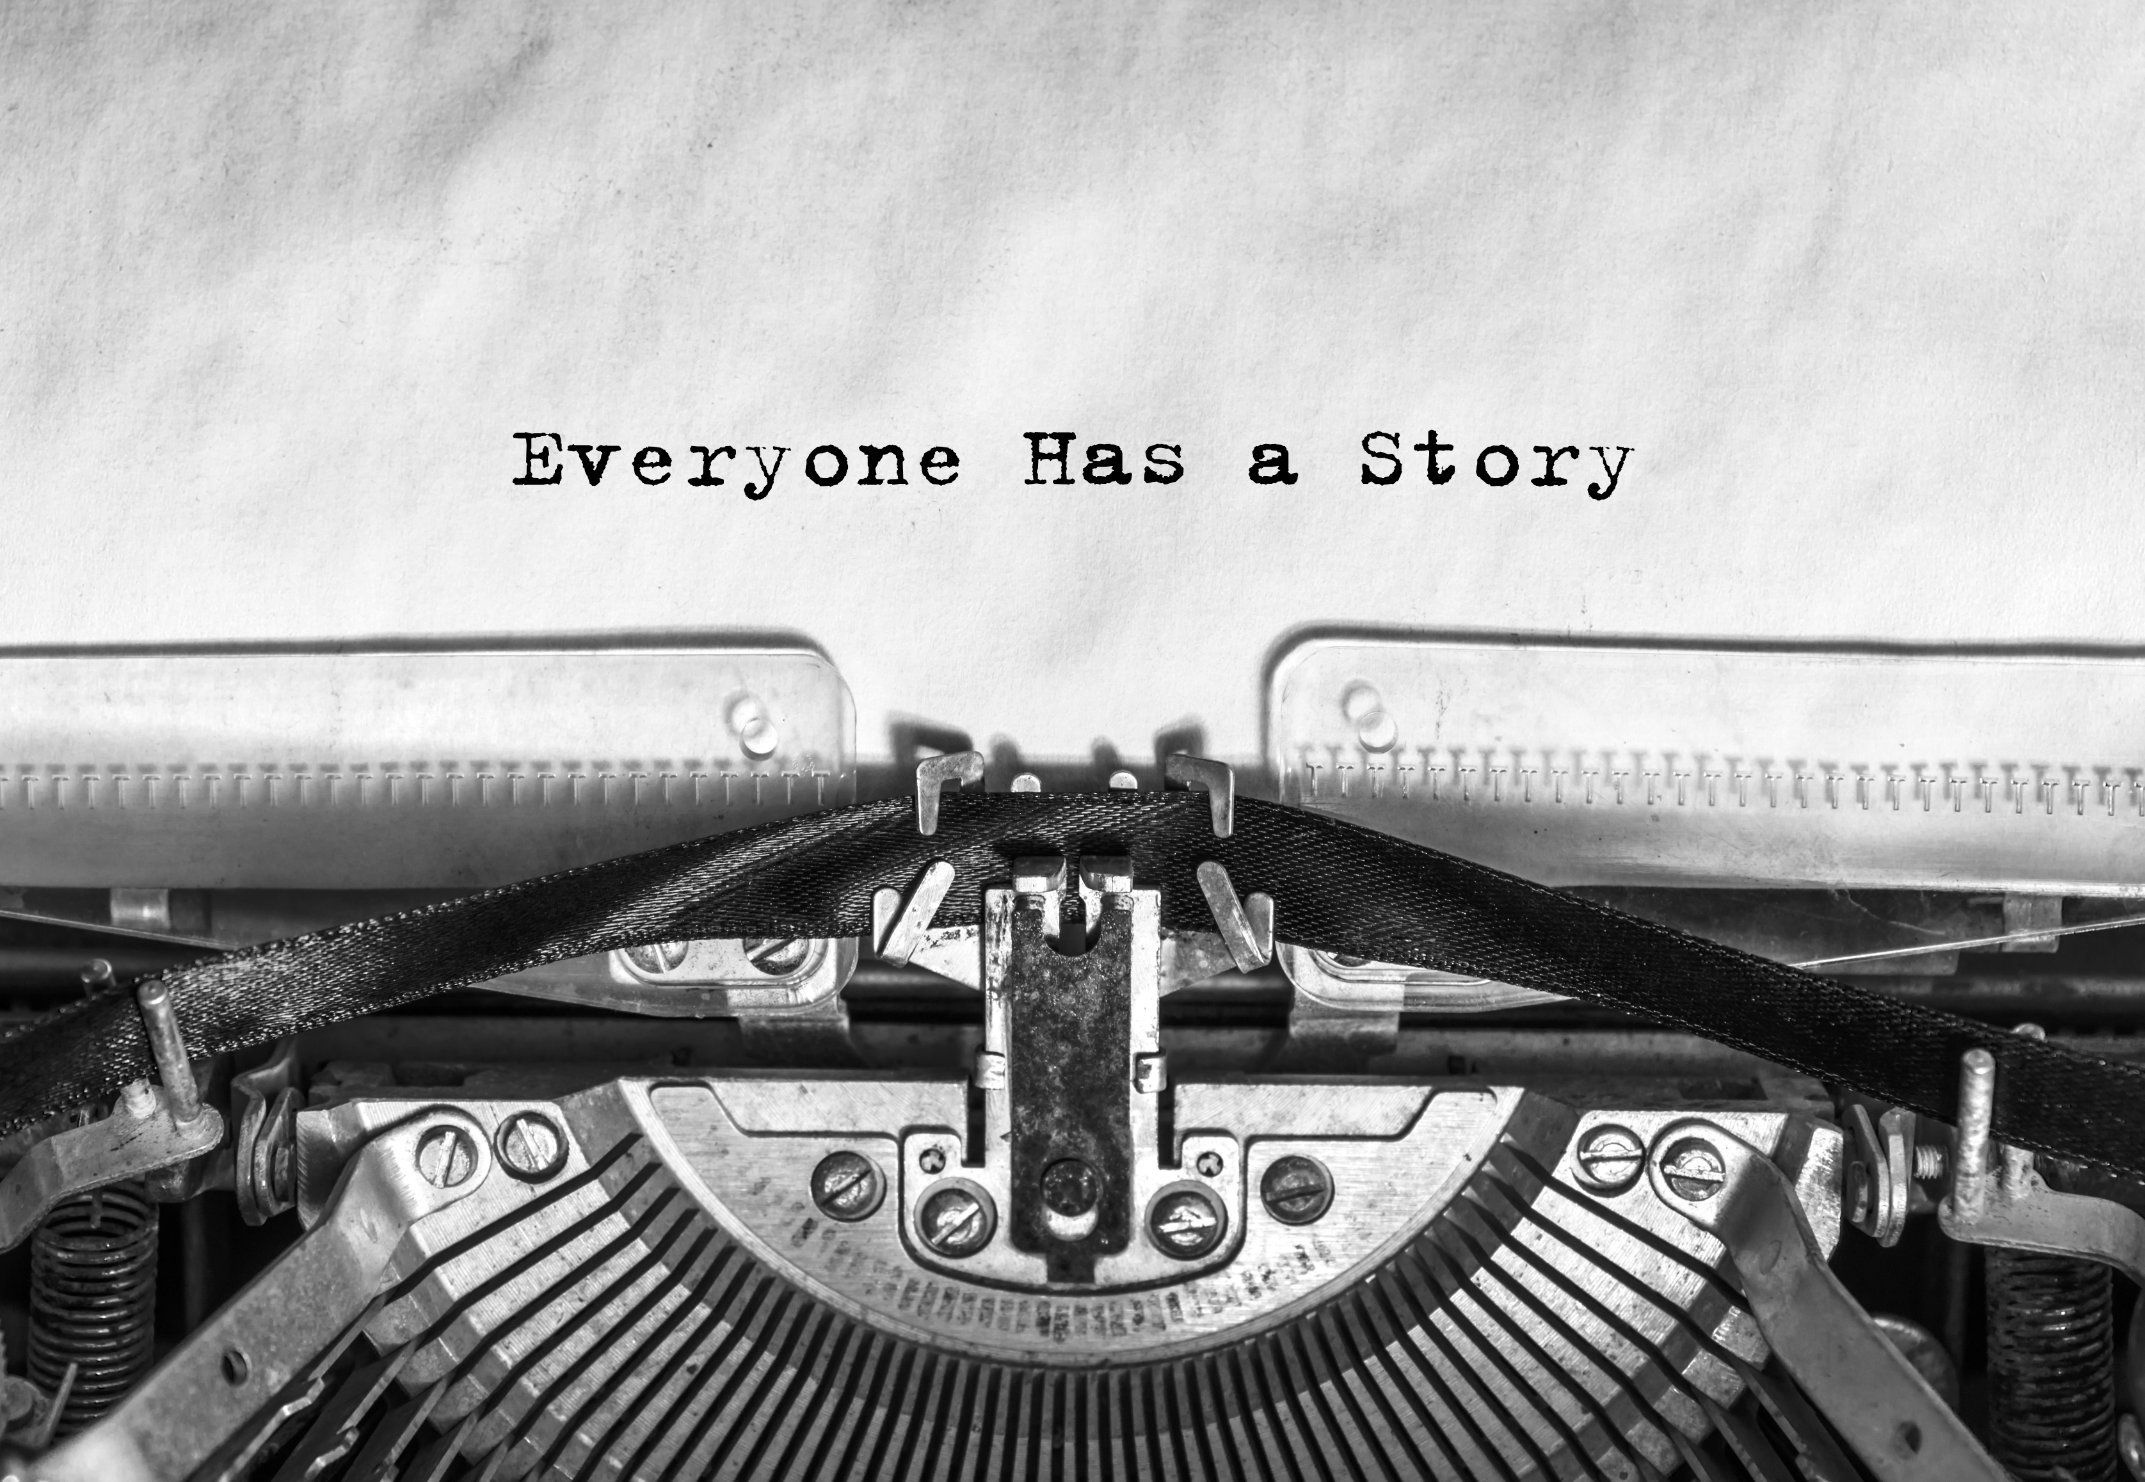 Old Typewriter - Everyone Has A Story